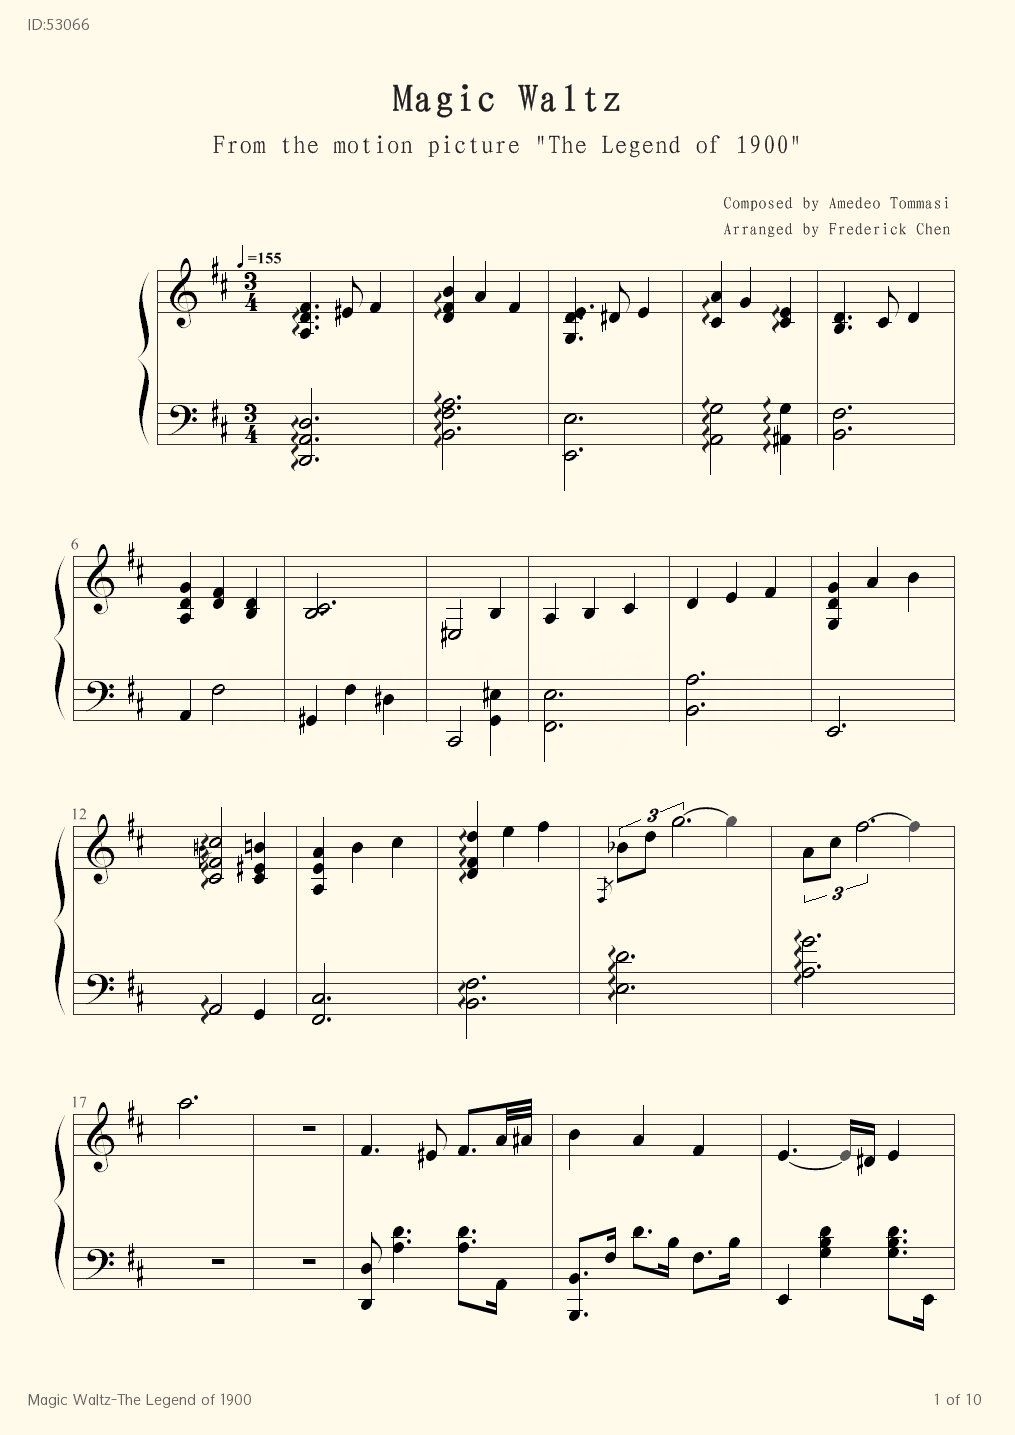 Magic Waltz The Legend of 1900 - Amedeo Tommasi - first page